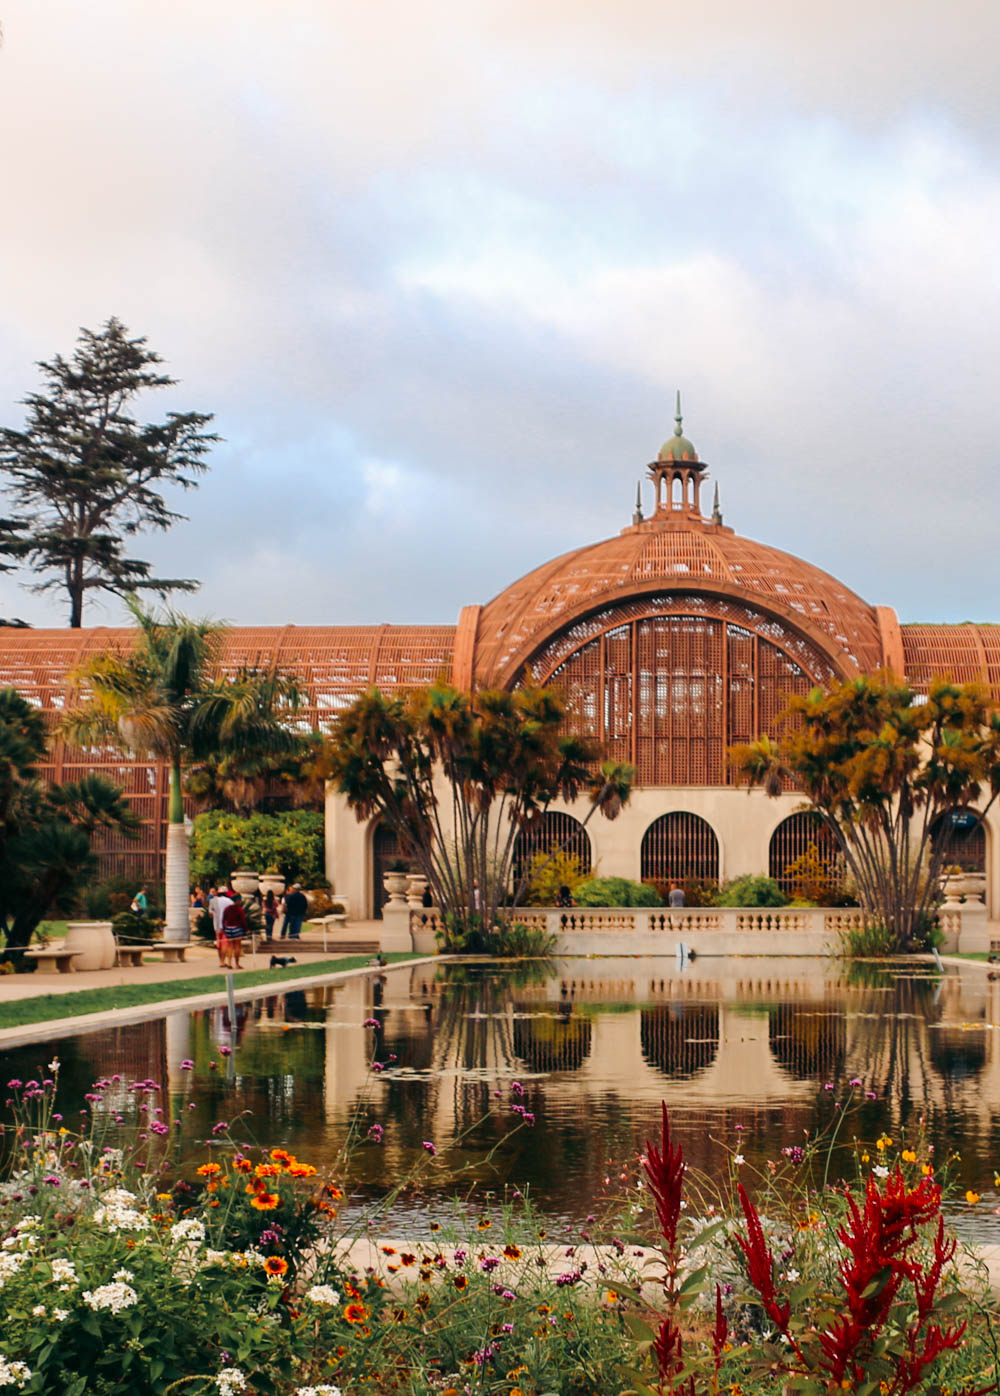 Botanical Building and Lily Pond - Roads and Destinations